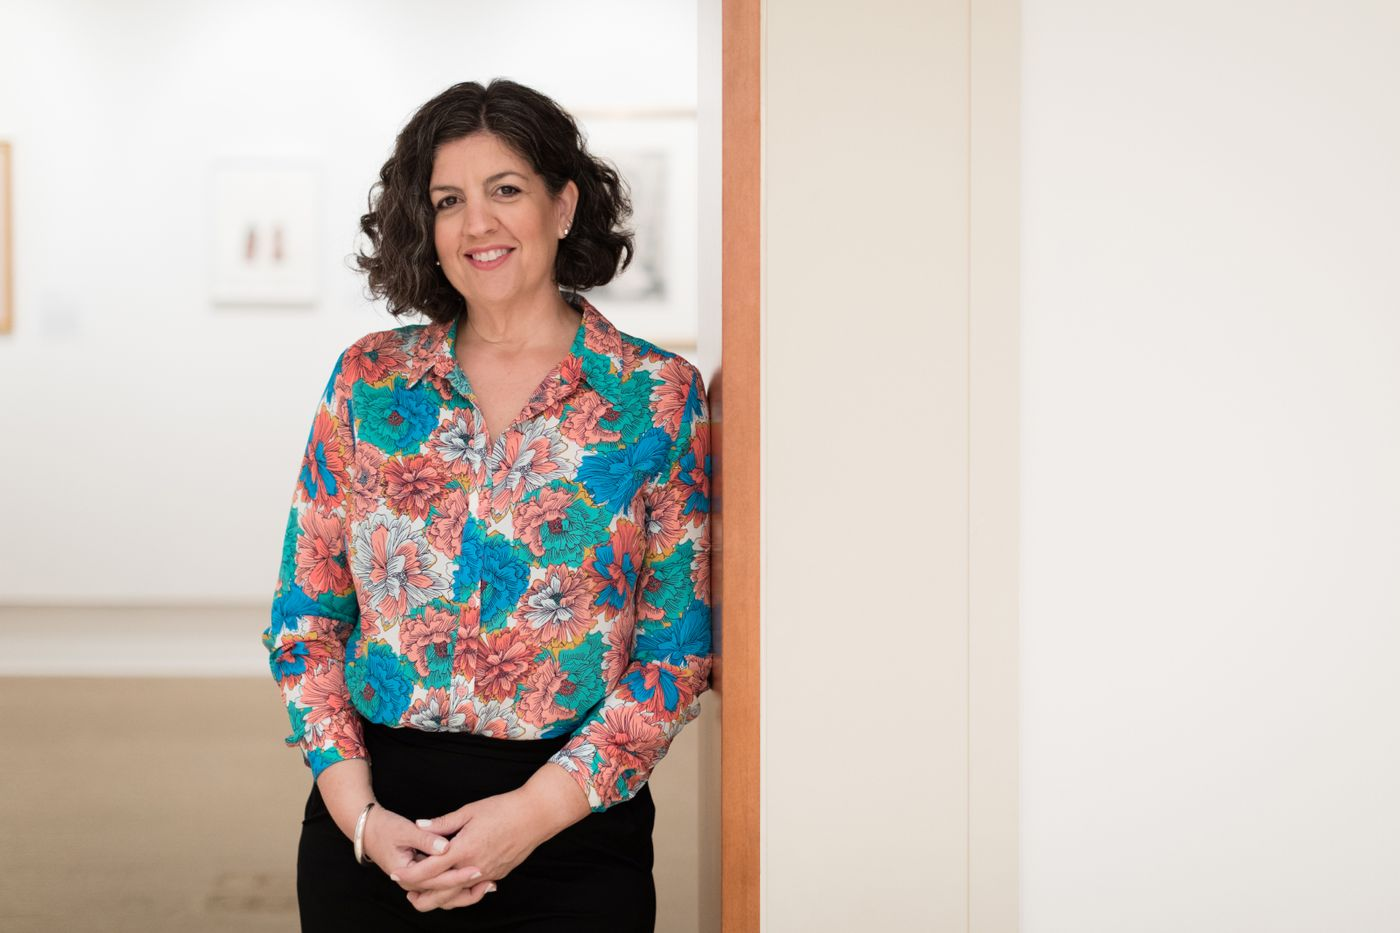 CFAM's new curator, Gisela Carbonell